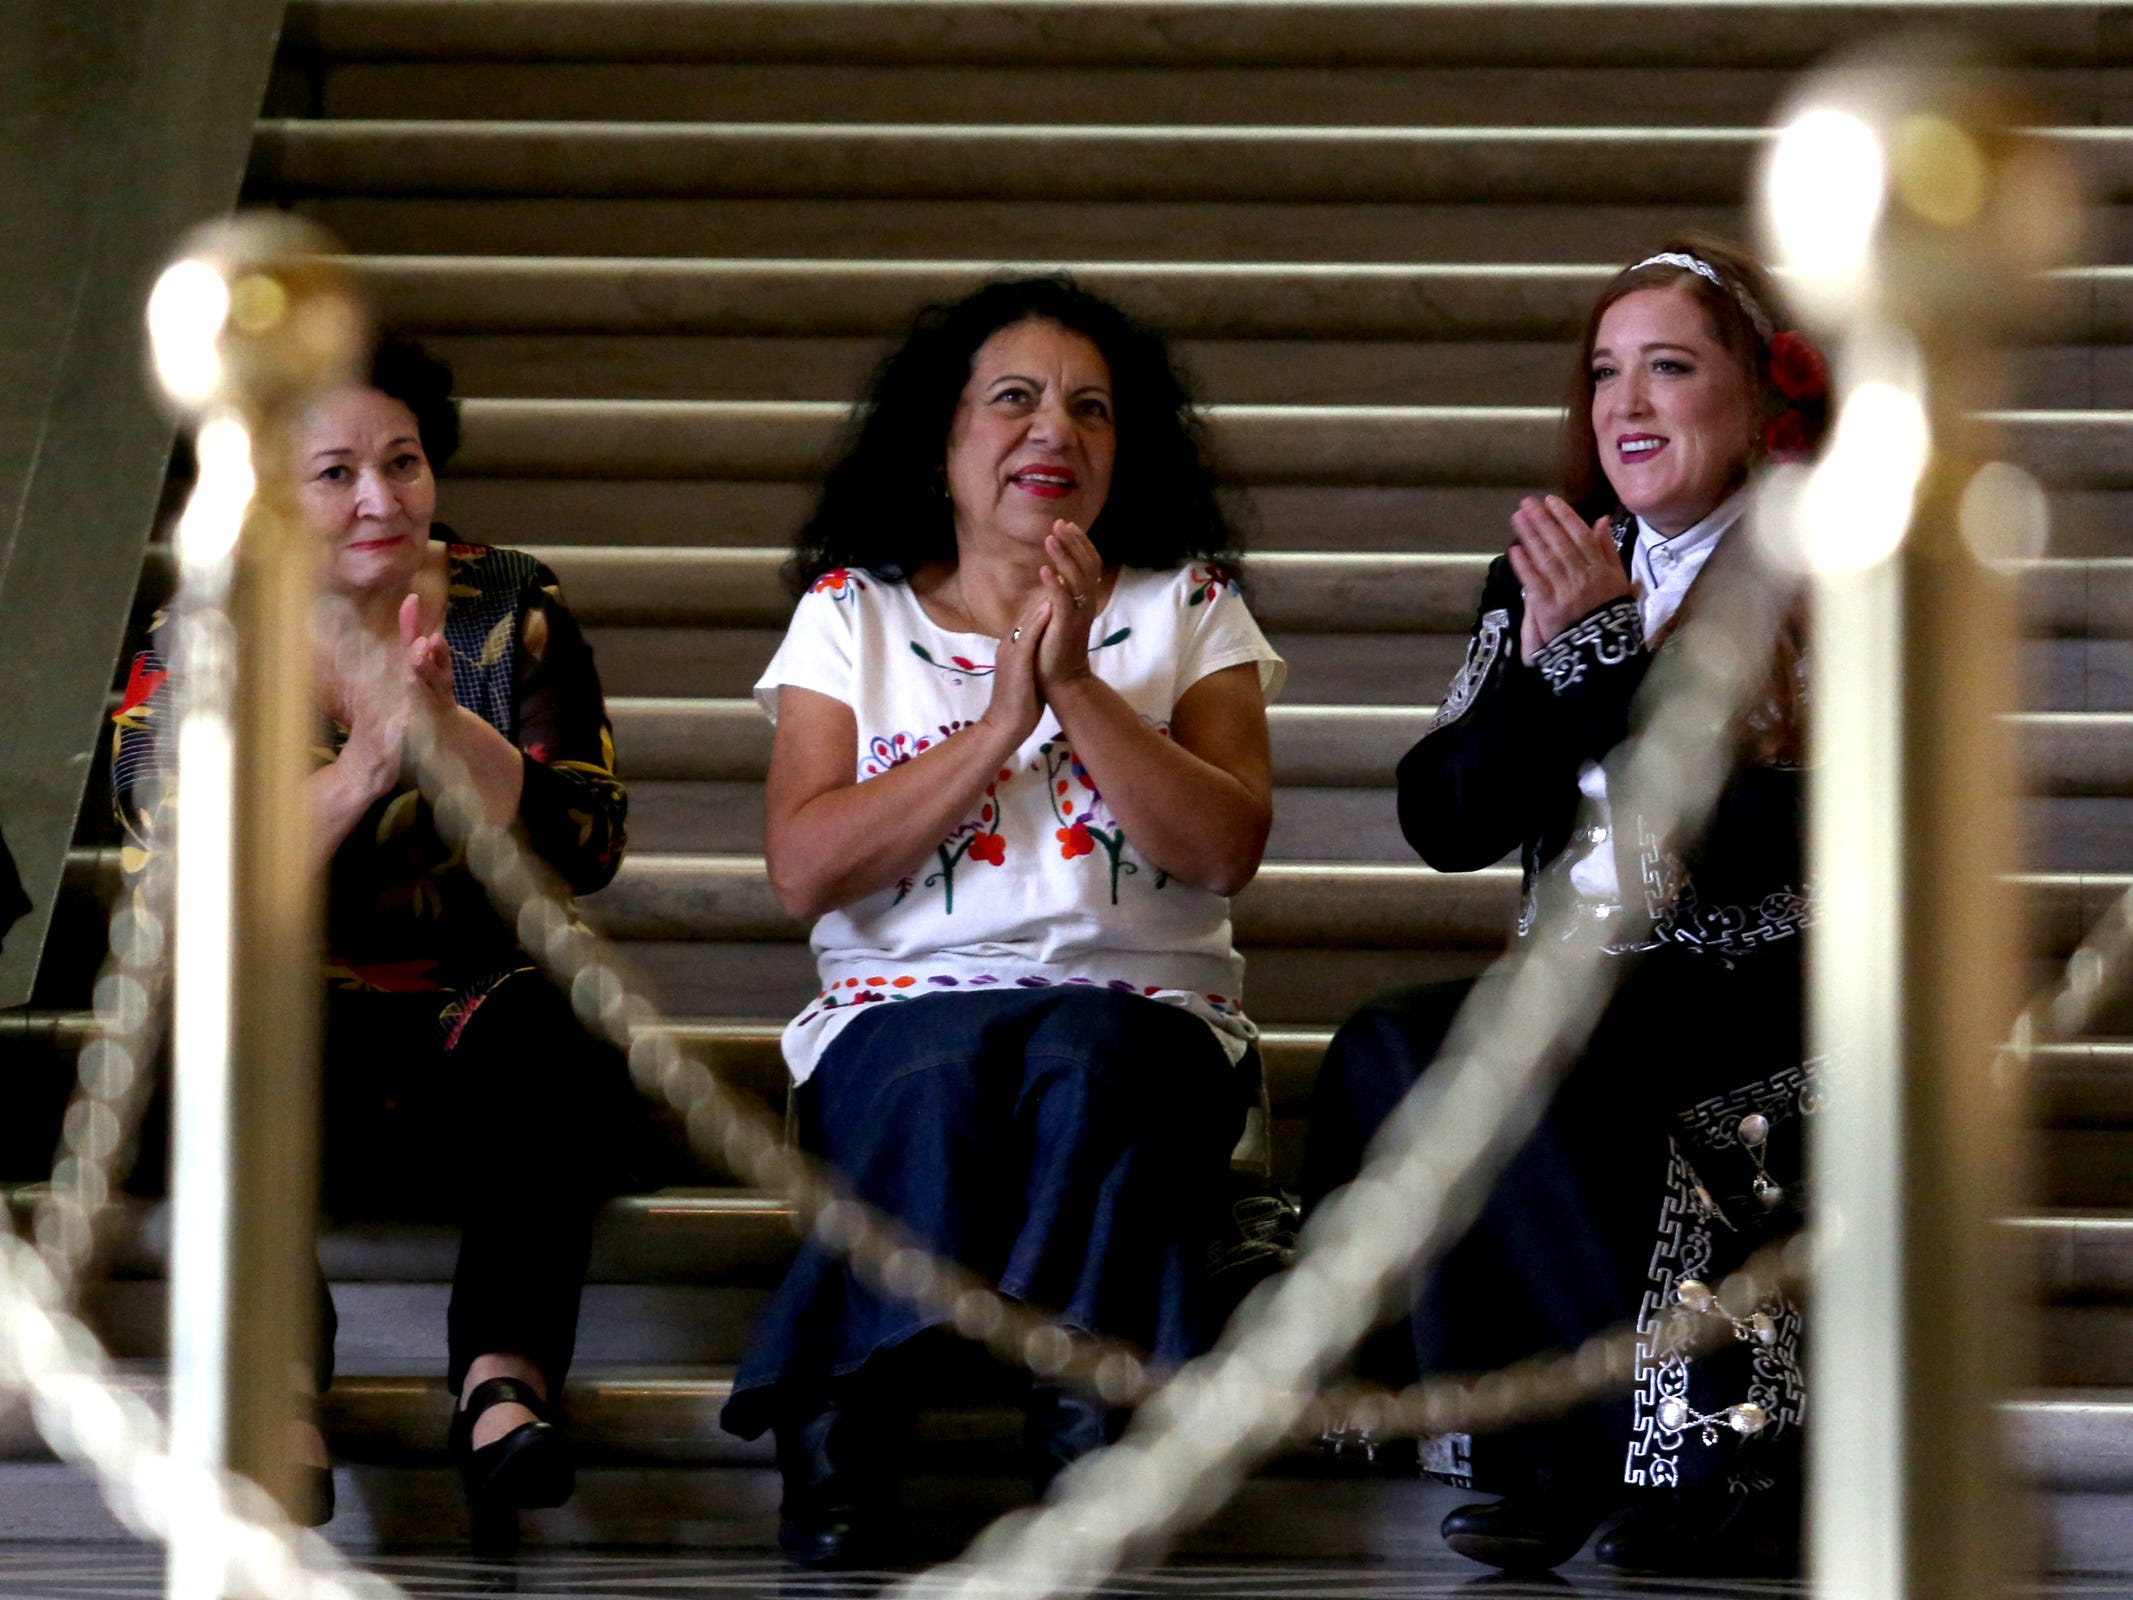 Angela Miranda, from left, of Salem, Mago Gilson, of Eugene, and Susana Arroyo, of Albany, applaud a guitar player during Hispanic Heritage Day at the Oregon State Capitol on Saturday, Oct. 20, 2018.